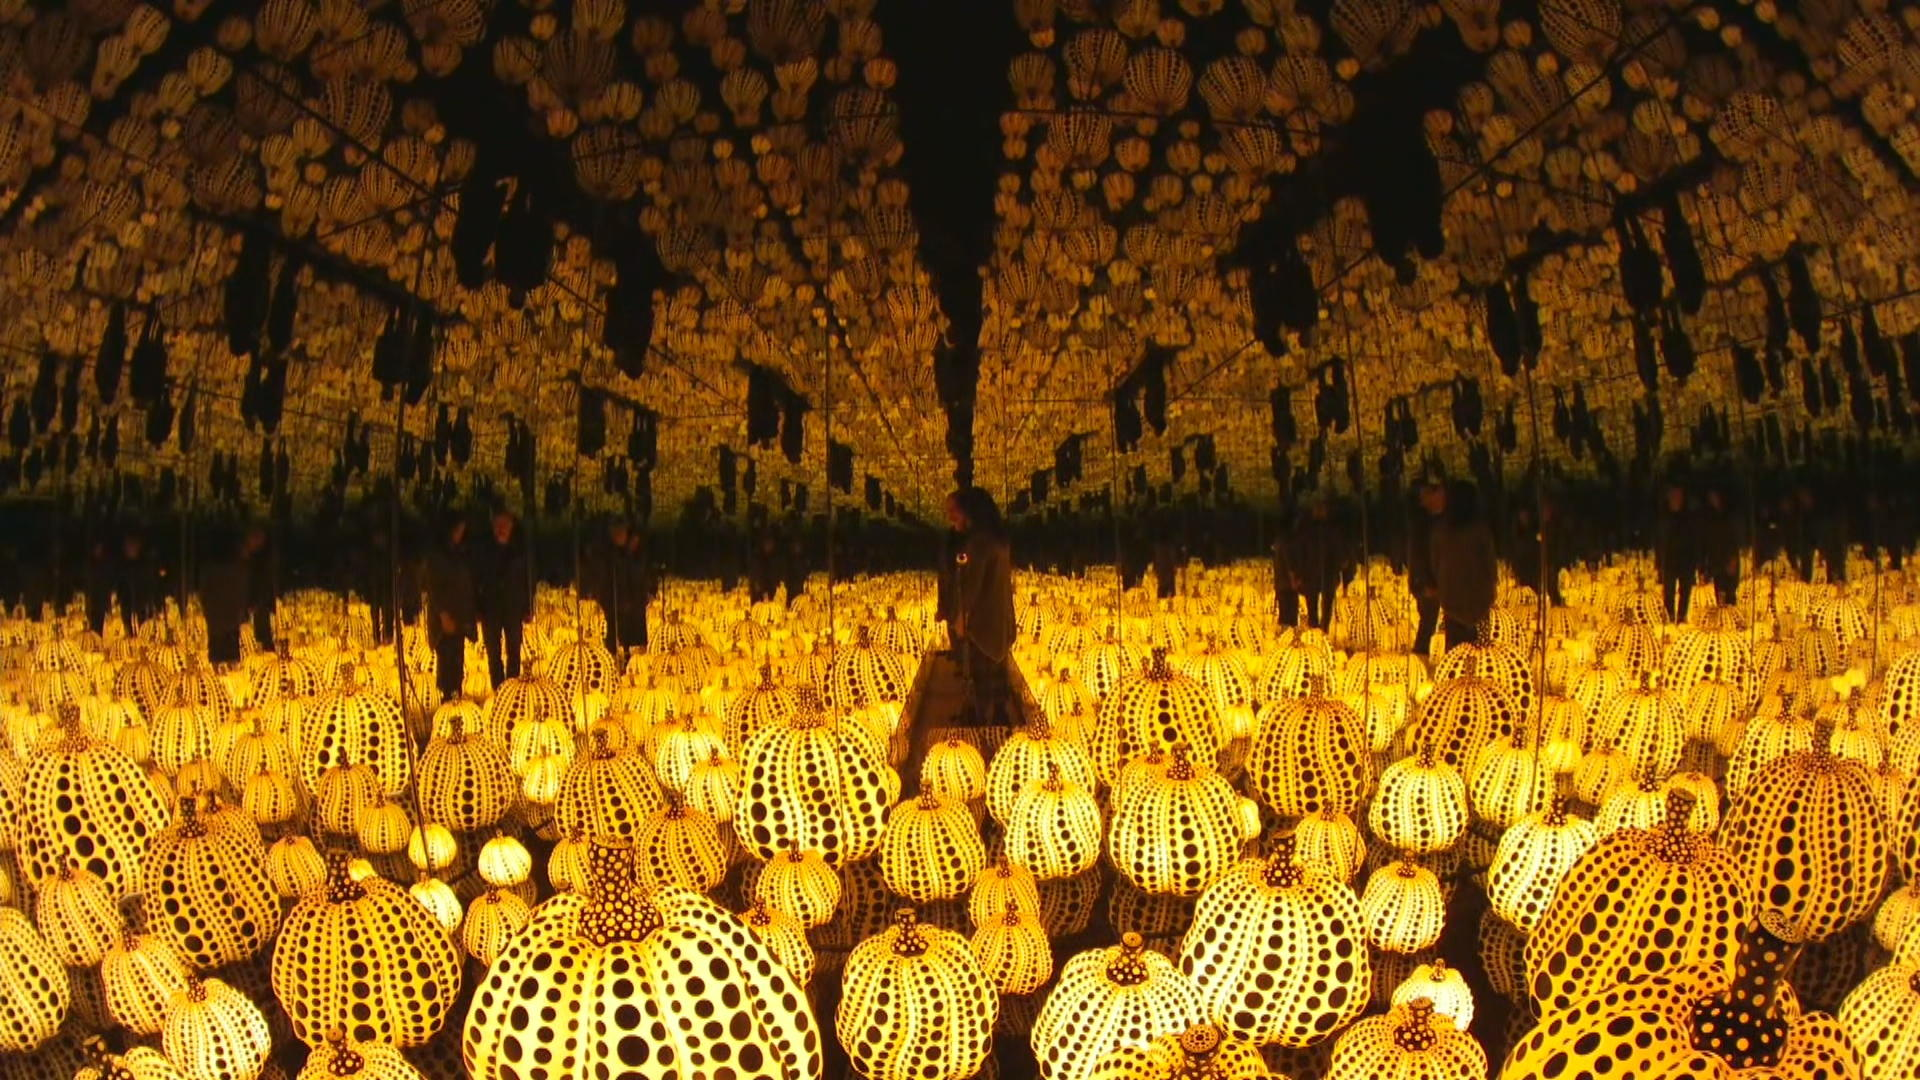 Enter legendary artist Yayoi Kusama's infinite world